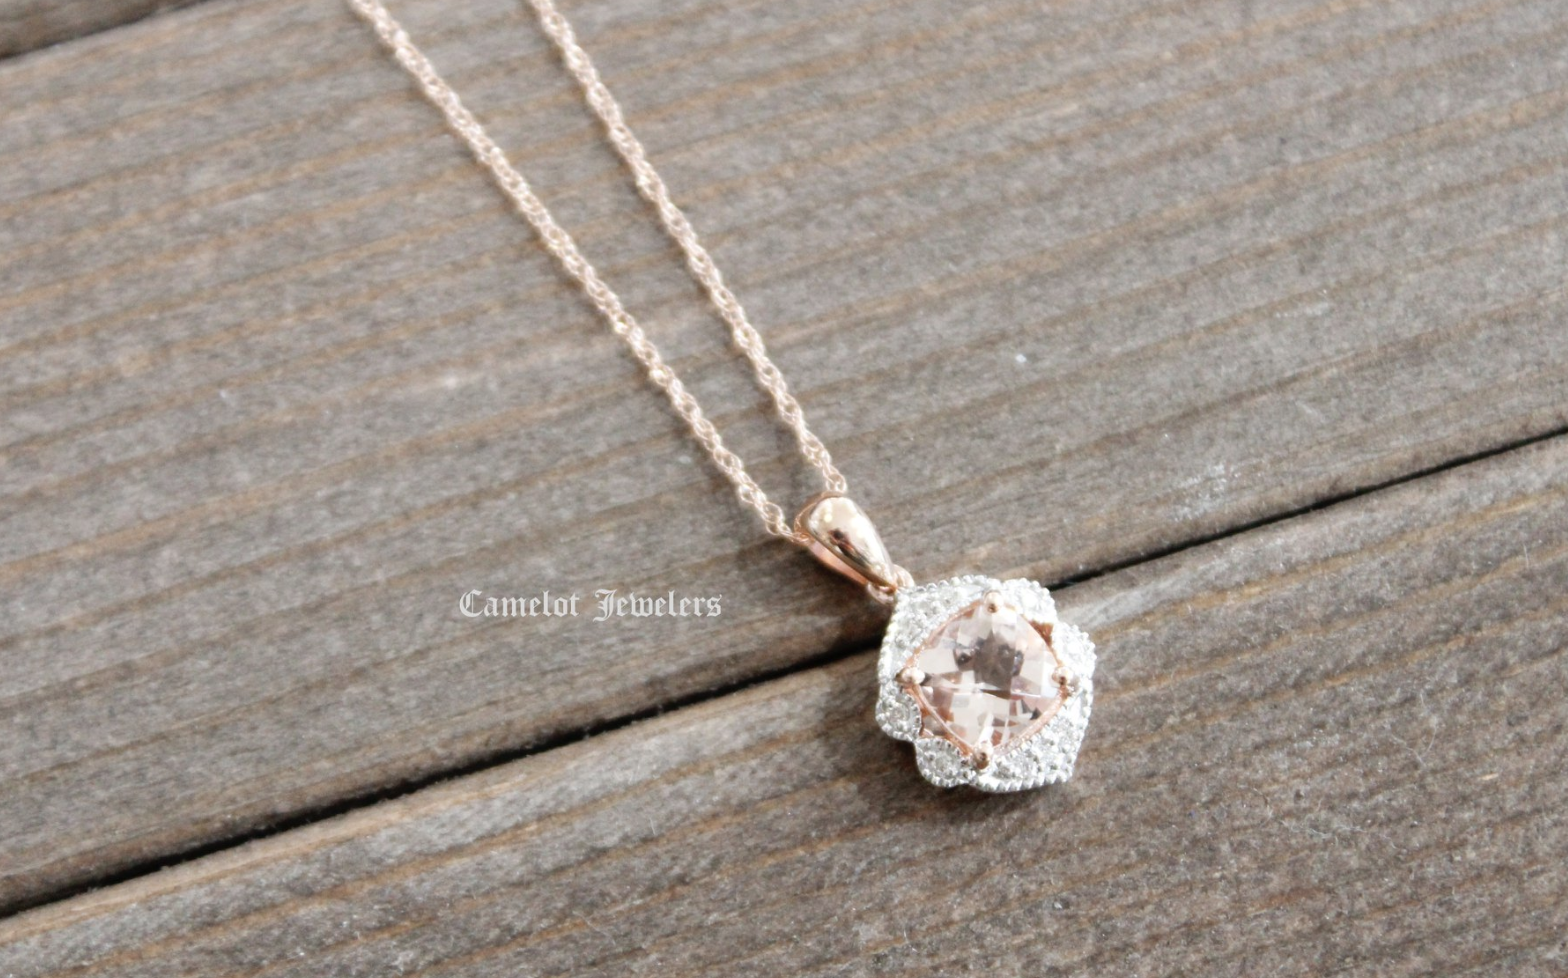 Necklace from Camelot Jewelers